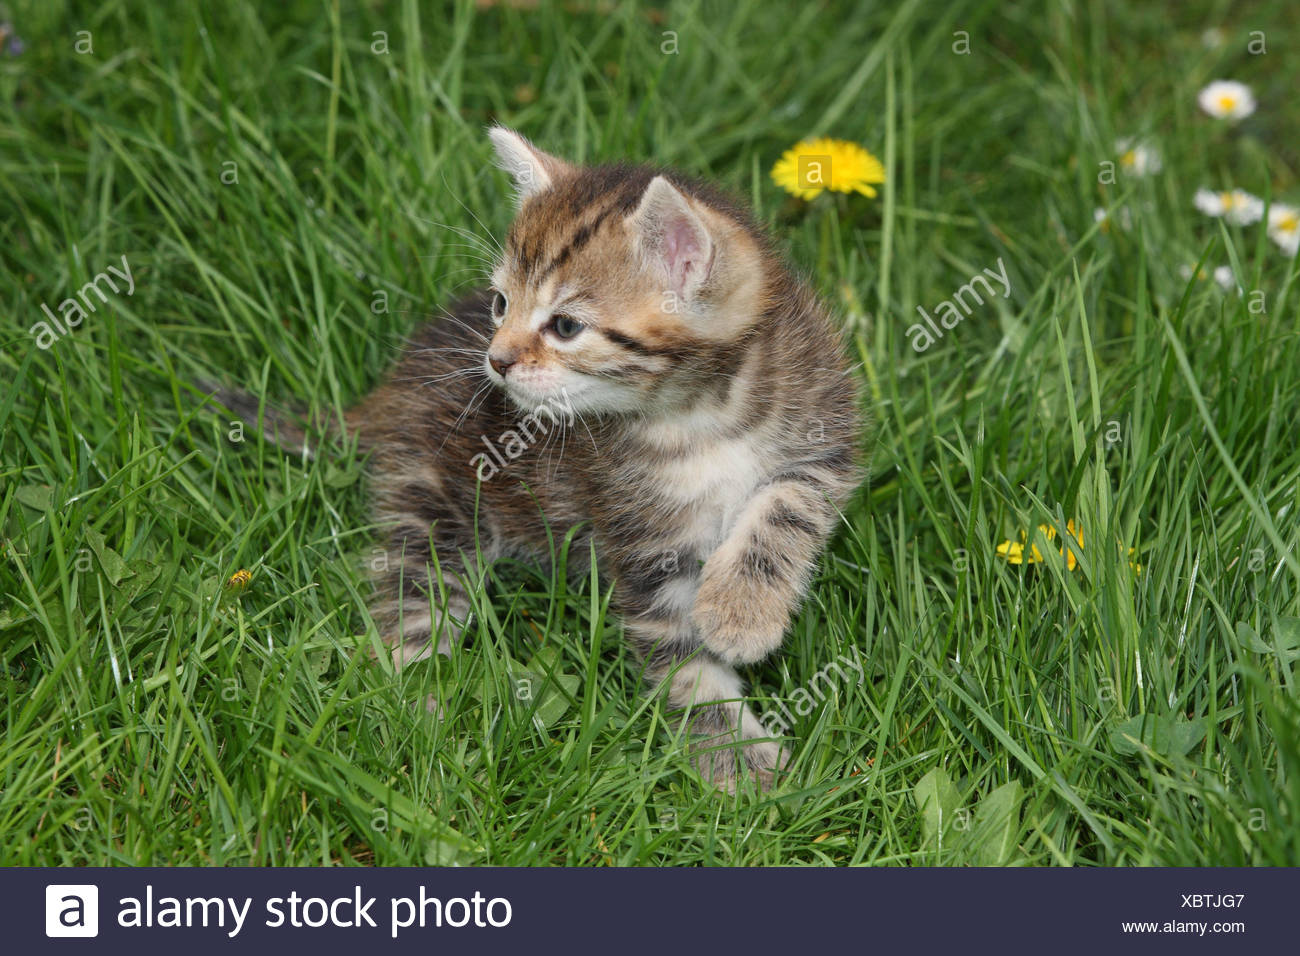 Cat, young, run, meadow, garden, animals, mammals, pets, small cats, Felidae, domesticates, house cat, young animal, kitten, small, awkward, clumsy, helplessly, sweetly, striped, look around, play curiosity, plants, individually, alone, young animals, animal baby, nature, outside, - Stock Image